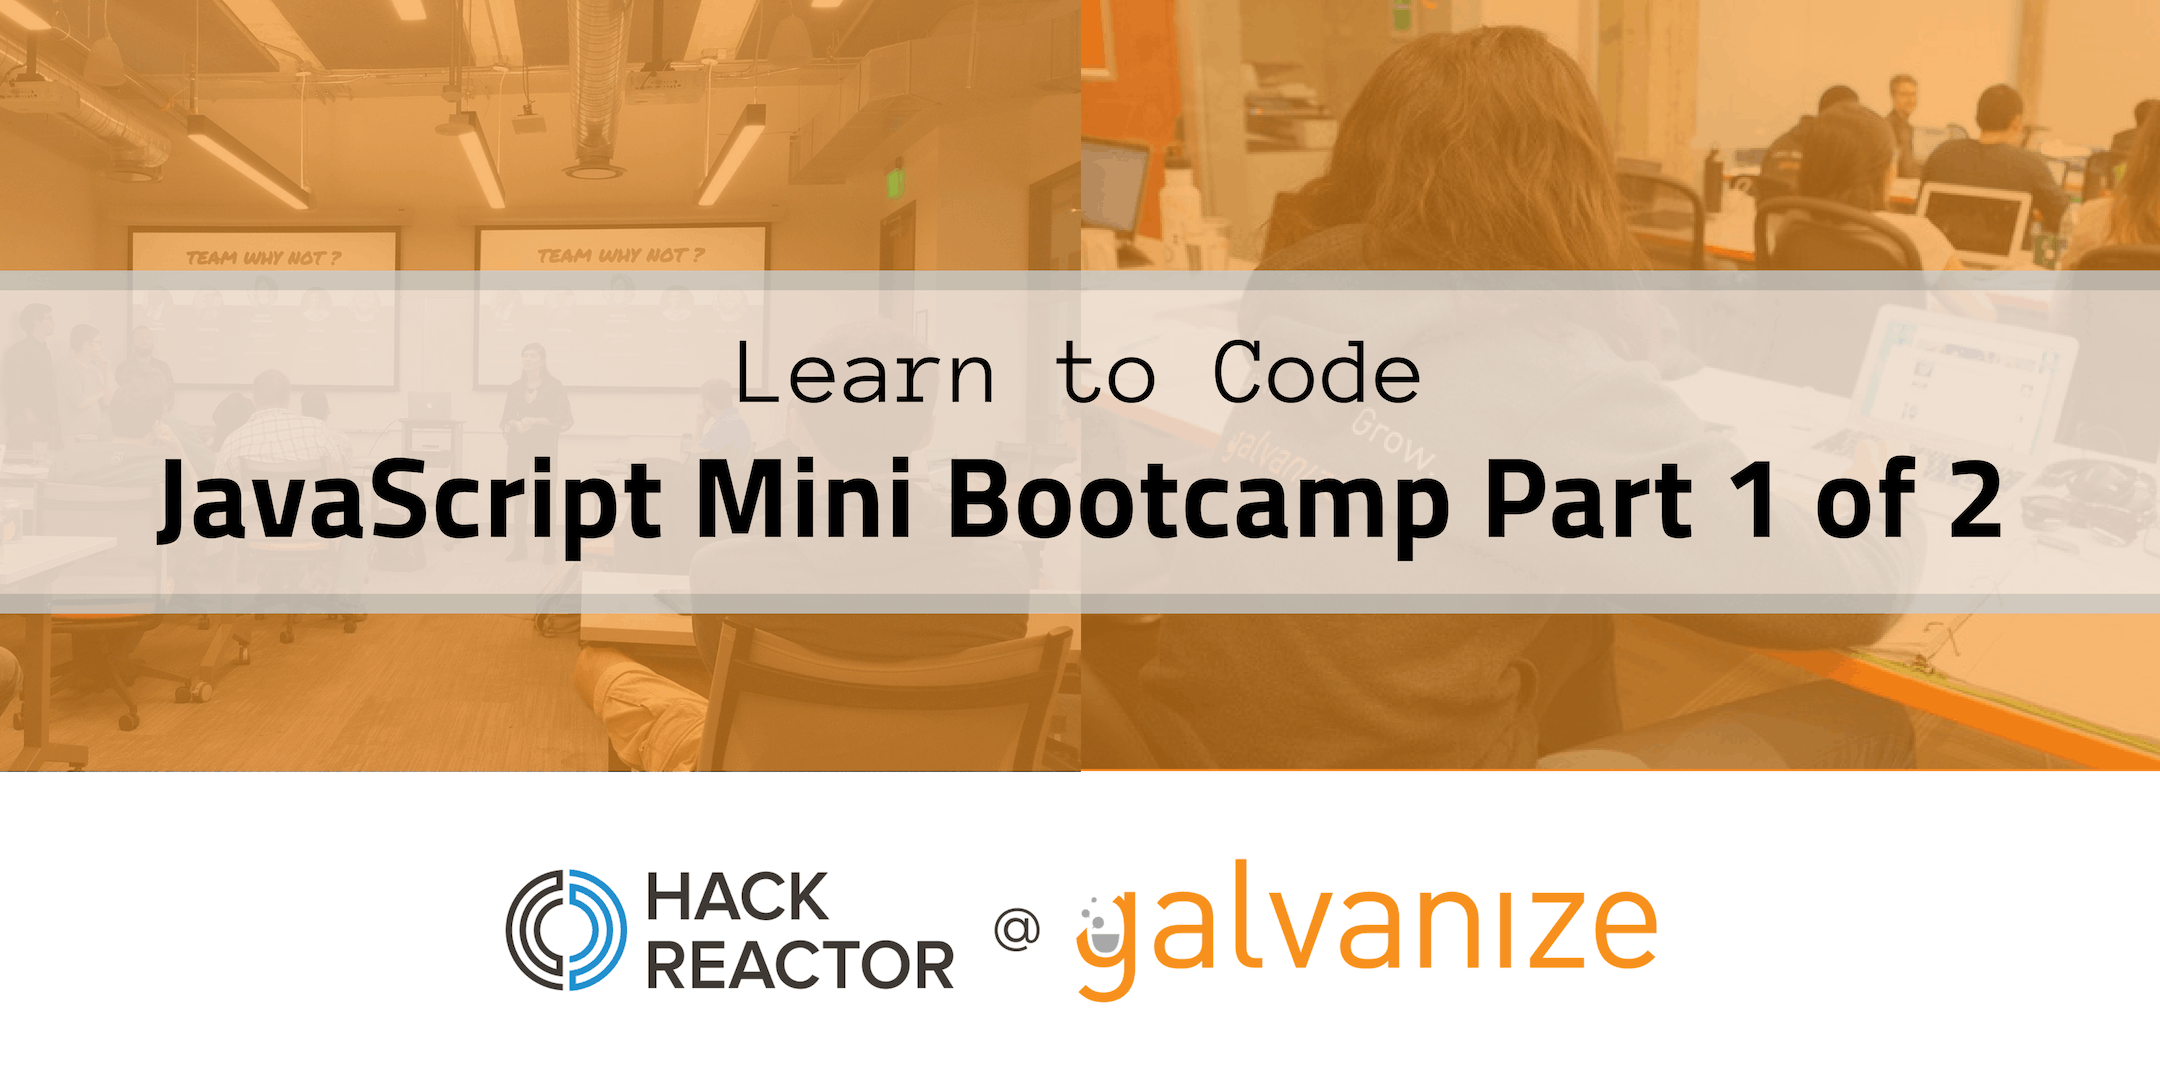 Learn to Code: JavaScript Mini Bootcamp Part 1 of 2